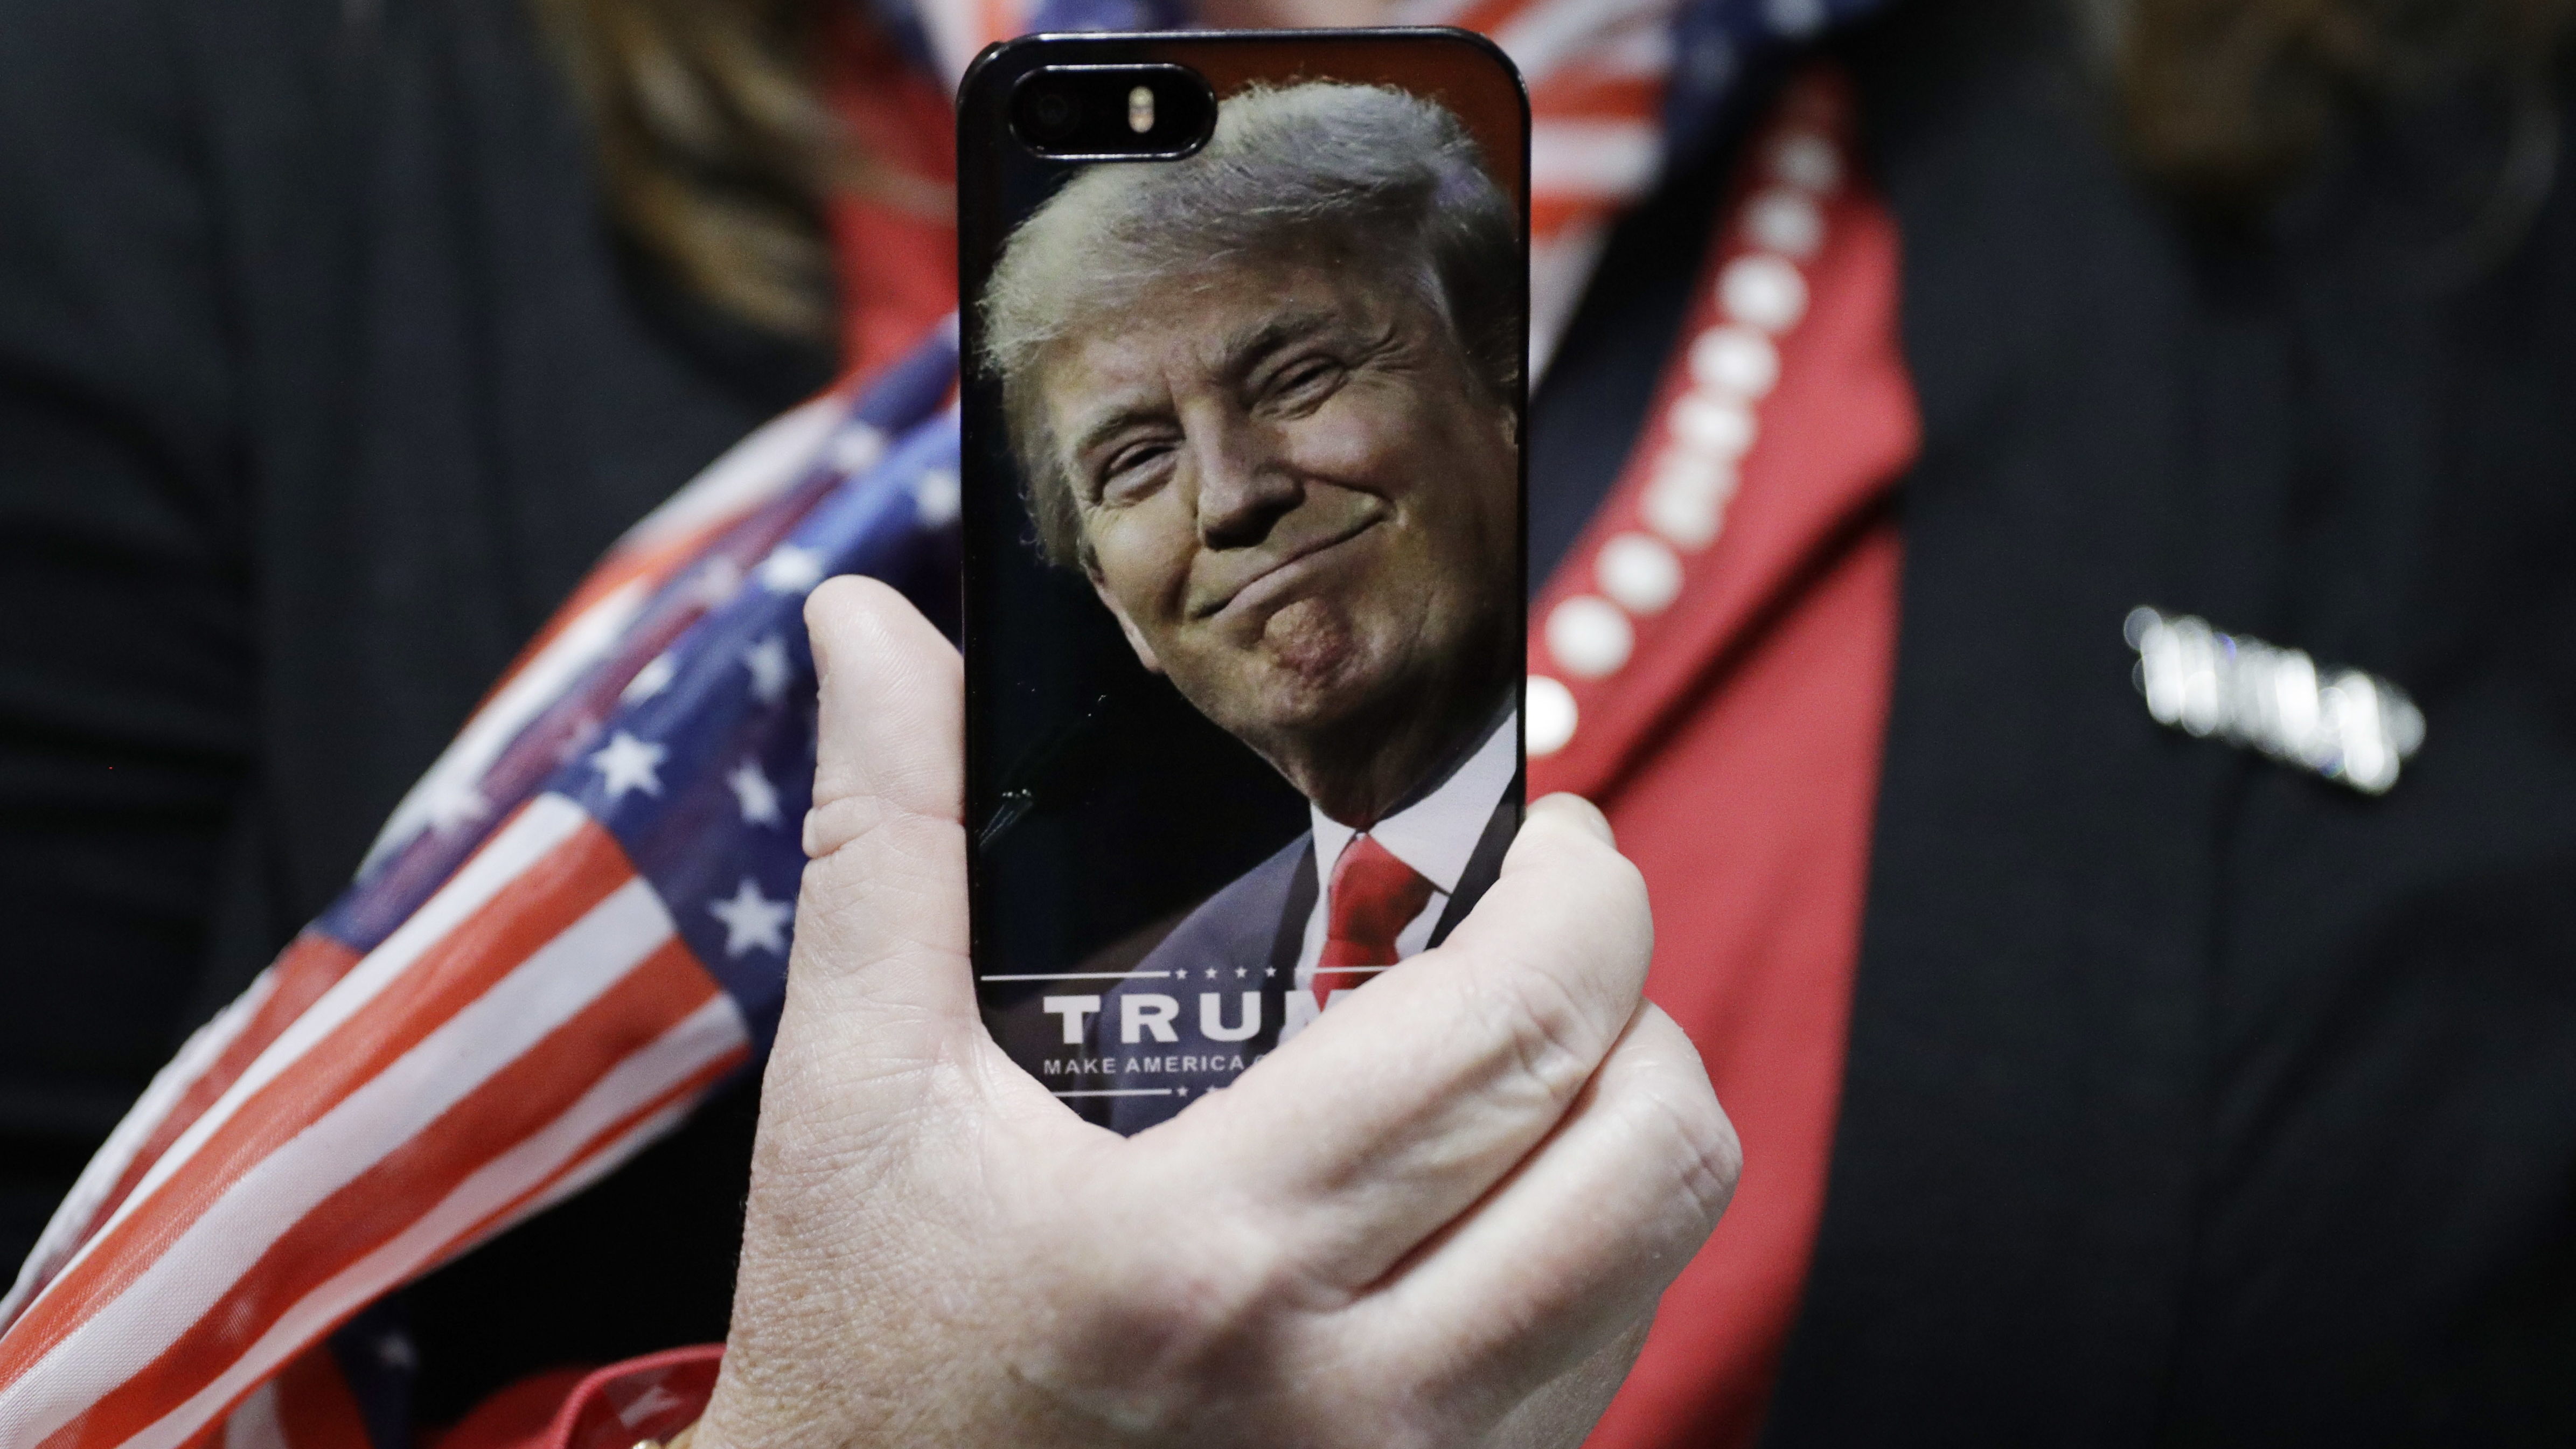 A woman holds up her cell phone before a rally with Republican presidential candidate Donald Trump, Thursday, Sept. 29, 2016, in Bedford, N.H. (AP Photo/John Locher)